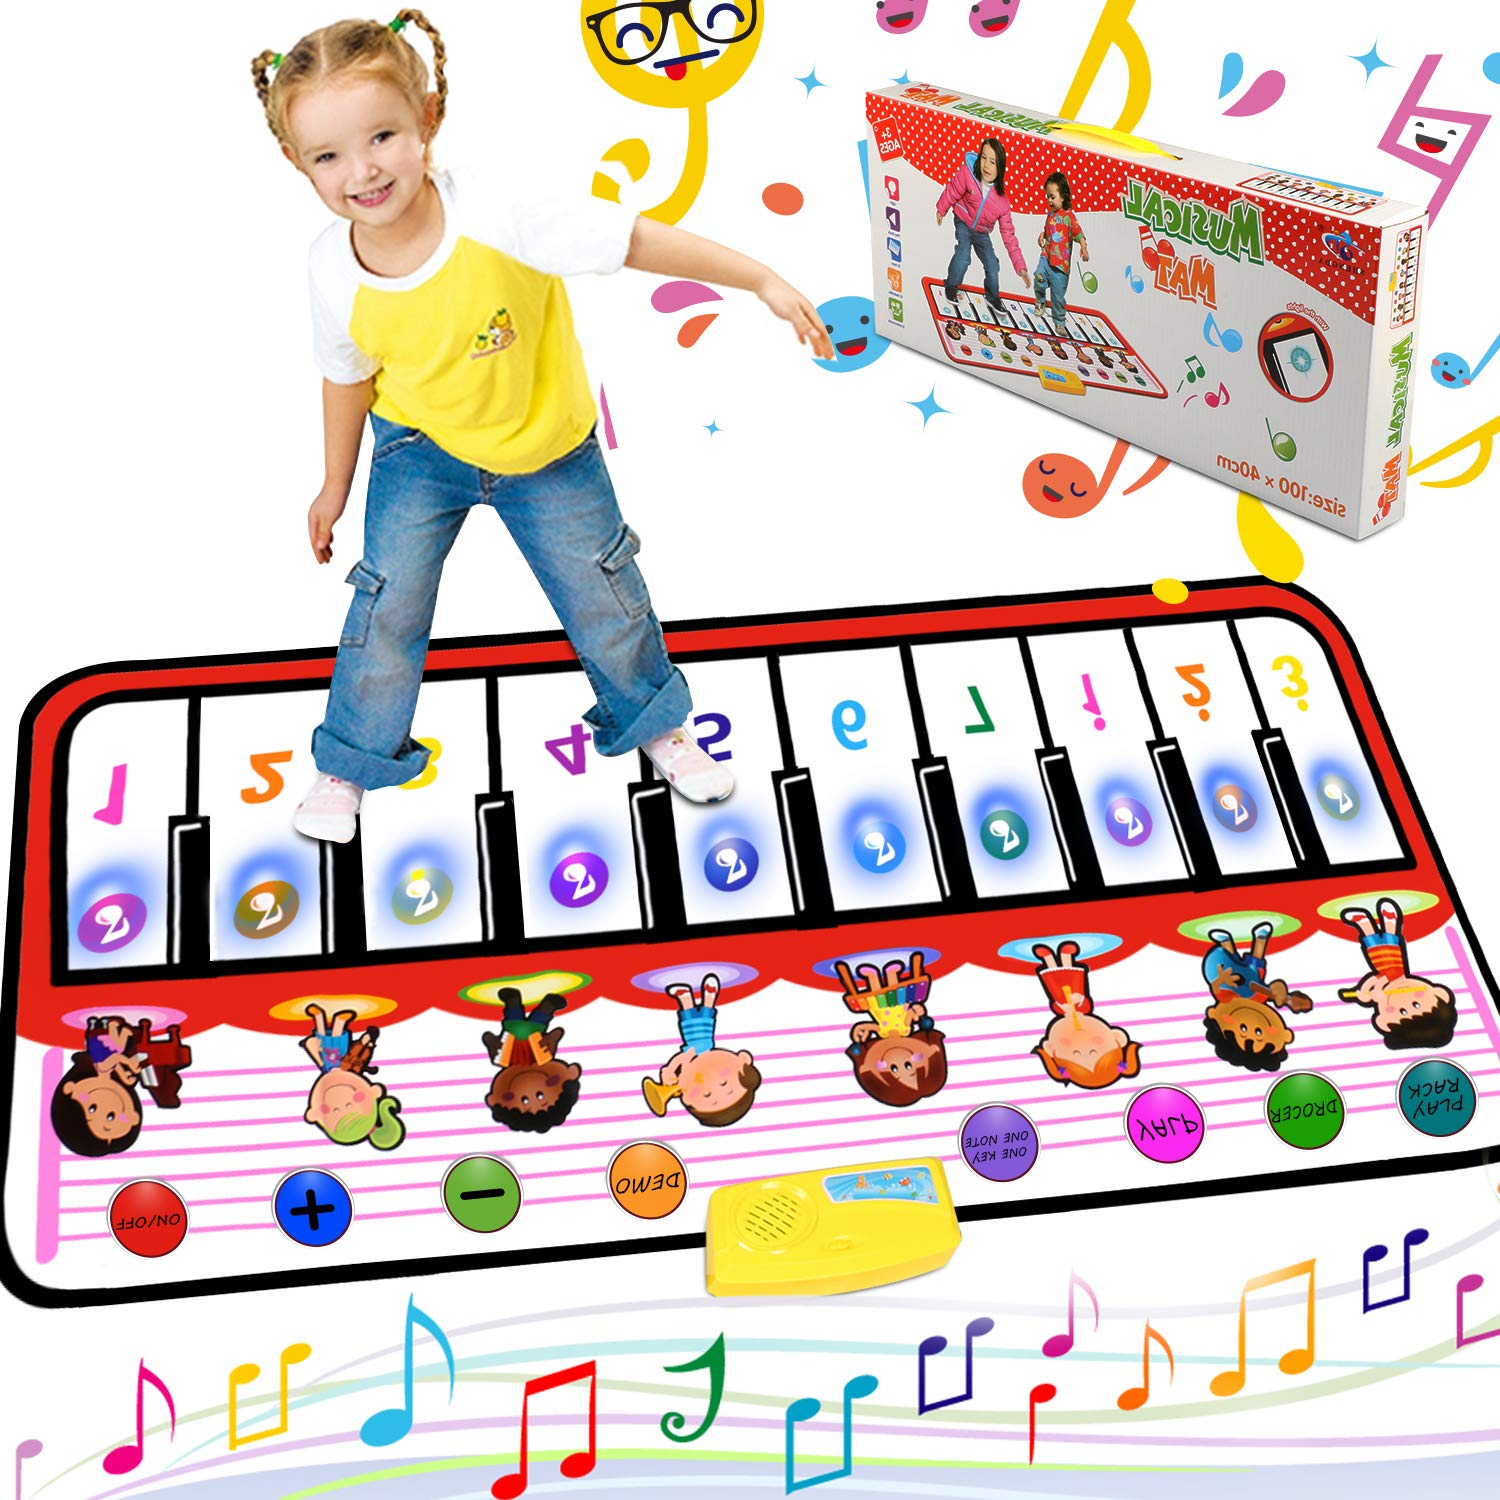 Musical Piano Mat Piano Keyboard Play mat Portable Electronic Educational Musical Blanket With 10 Flashing LED lights Speaker & Recording Function Gifts For Kids Toddler Girls Boys Christmas by Tencoz